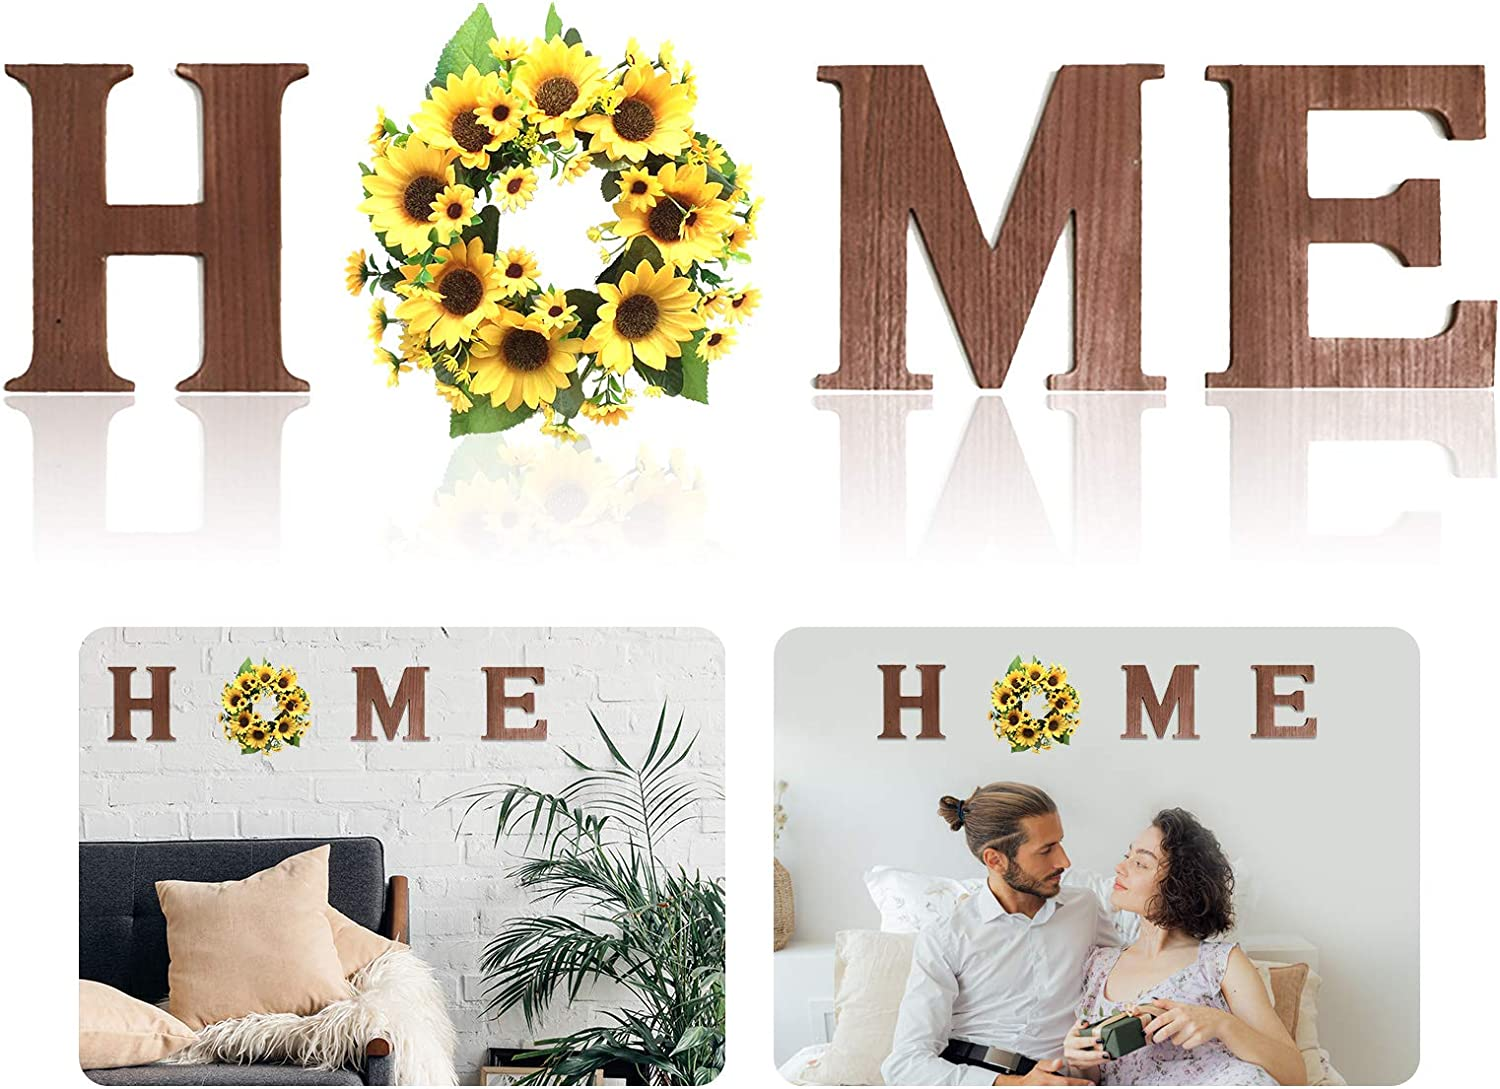 Housewarming Gift for New Home, Wall Hanging Wood Home Sign with Artificial Sunflower Wreath, Rustic Wooden Home Hanging Letters, Decorative Wall Decor Signs for Home Decor Living Room House